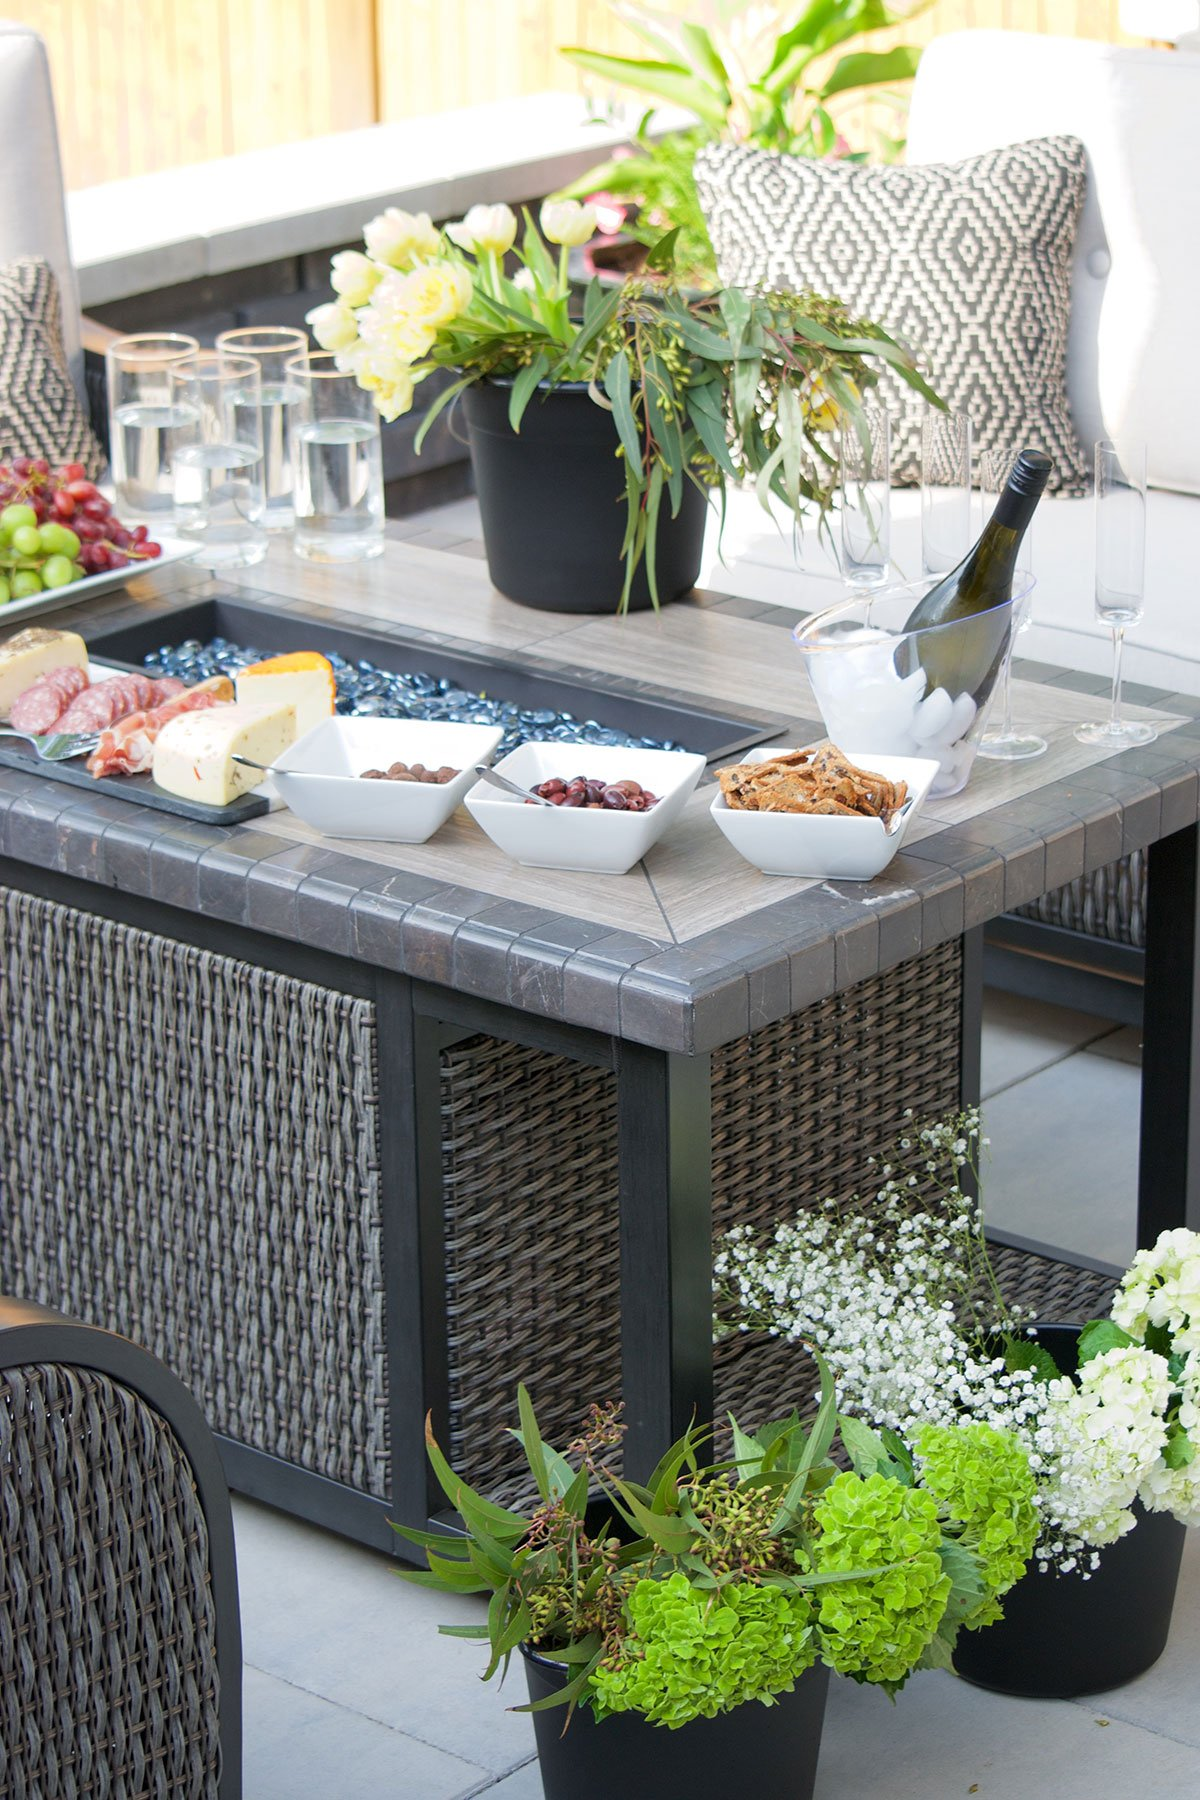 firepit table with party food and drinks and various flower arrangements